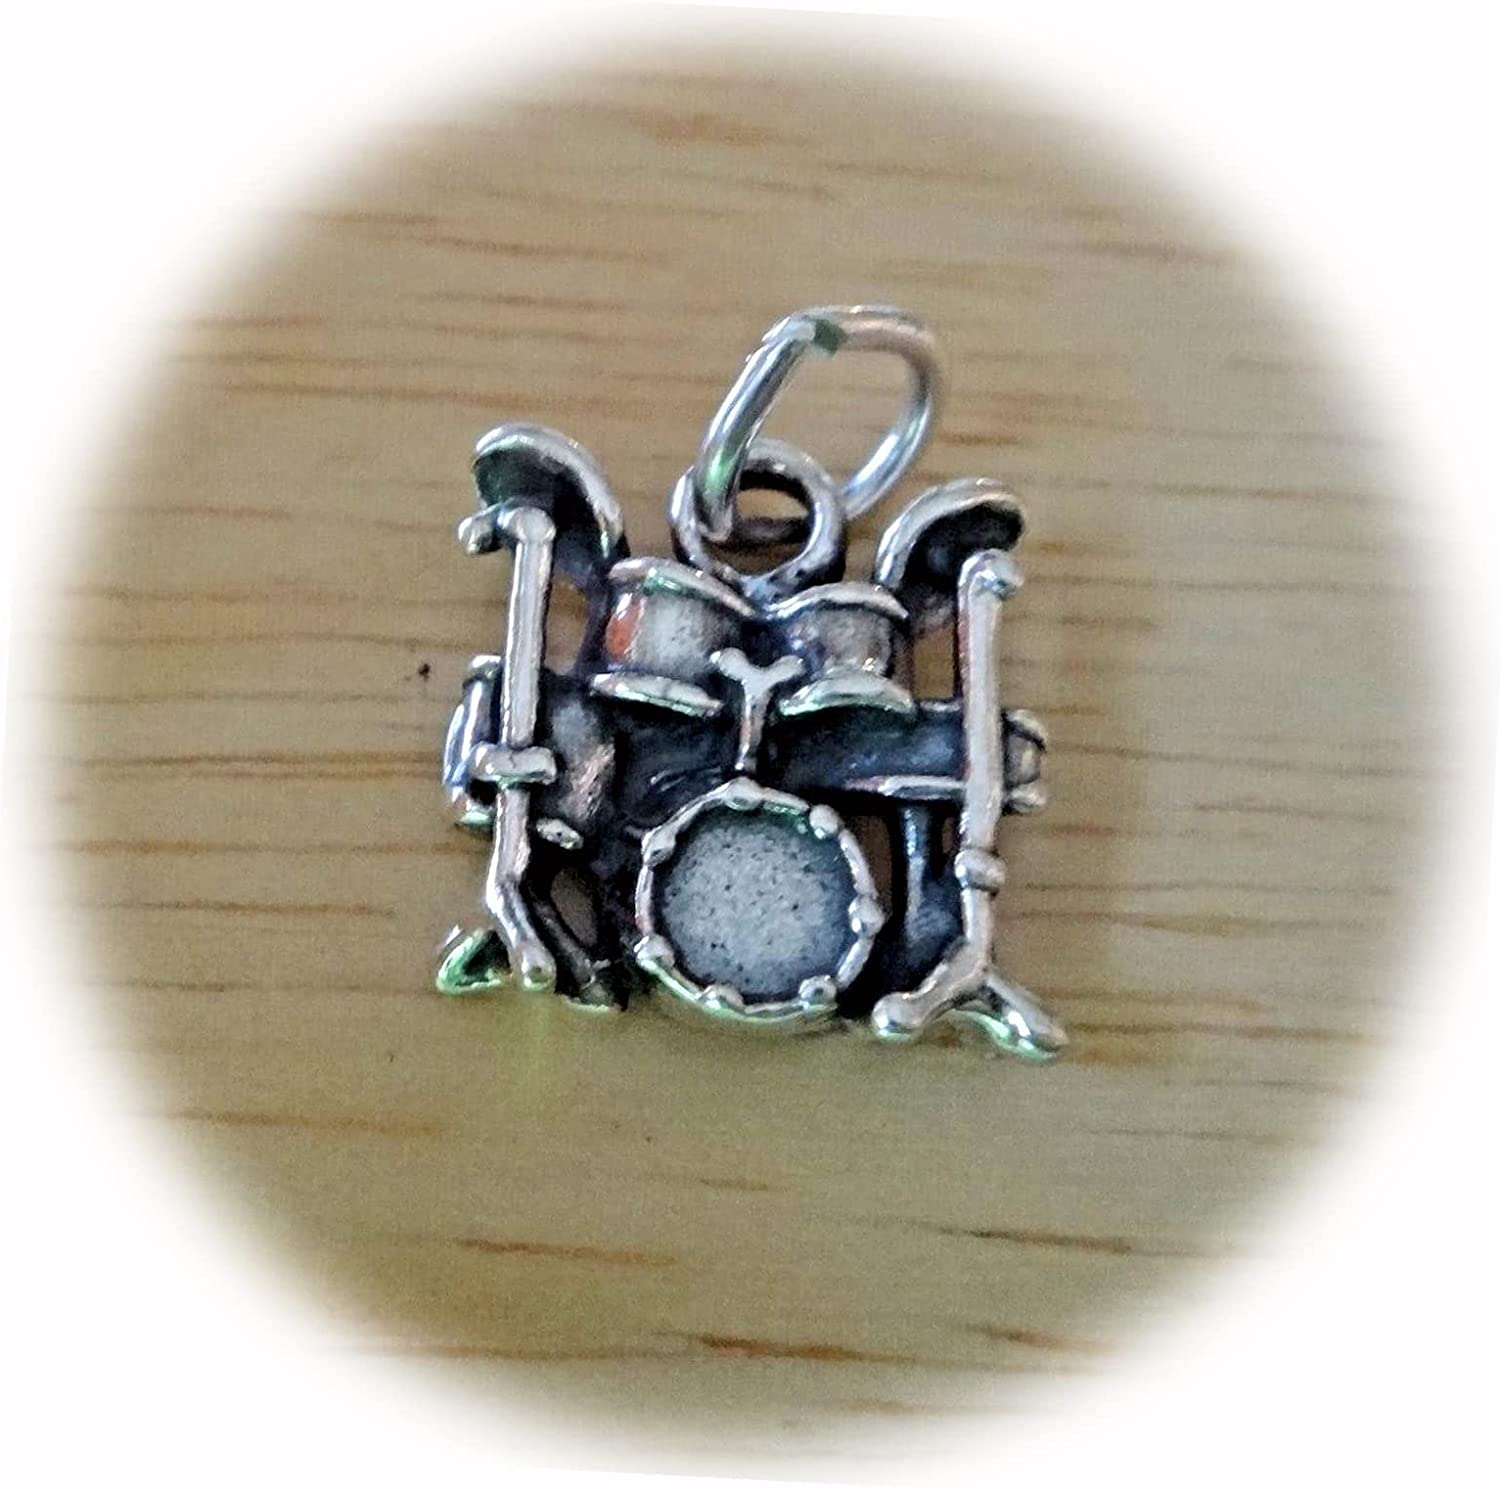 New Sterling Silver 13x13mm Small Drum Music Cheap SALE Start Cymbals Charm Set 2021new shipping free S